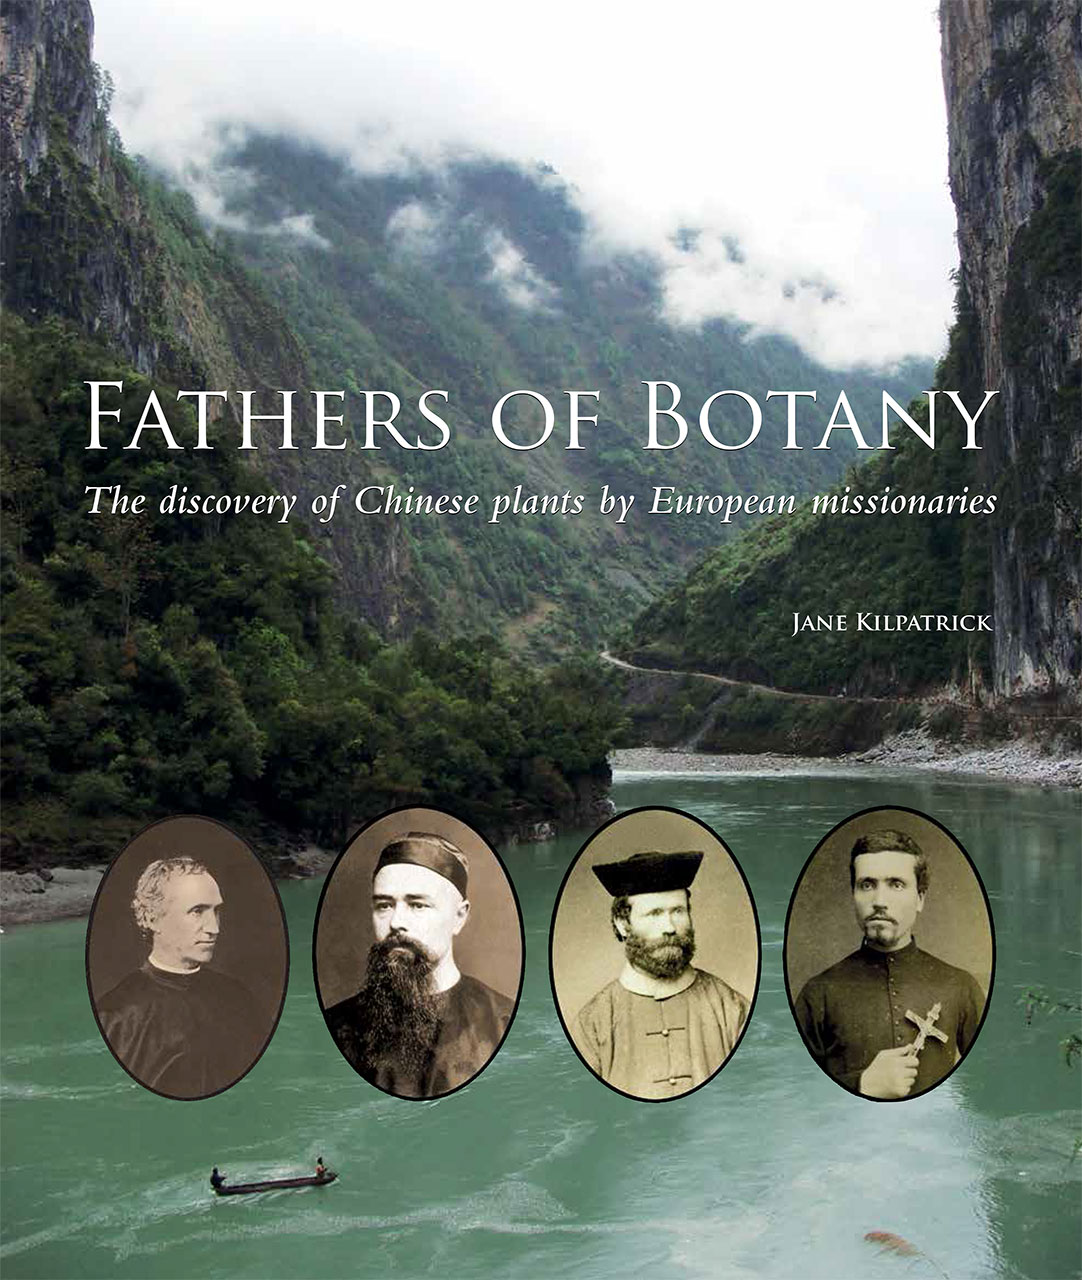 Fathers of Botany: The Discovery of Chinese Plants by European